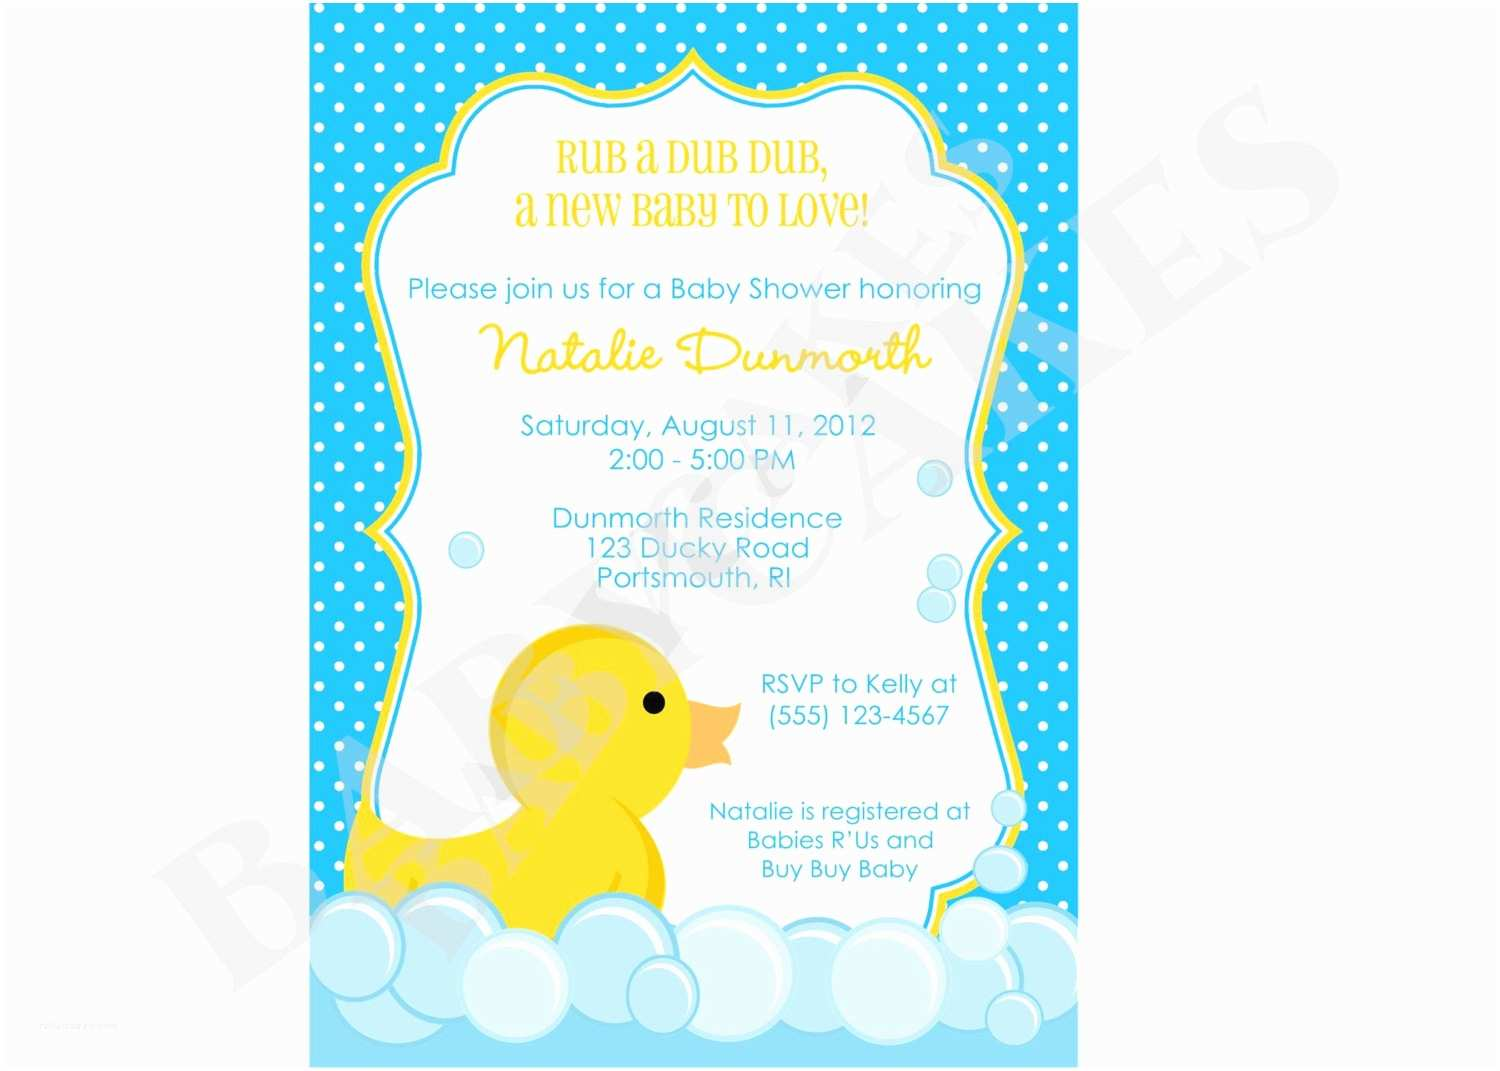 Rubber Duck Baby Shower Invitations Free Rubber Ducky Baby Shower Invitations Template